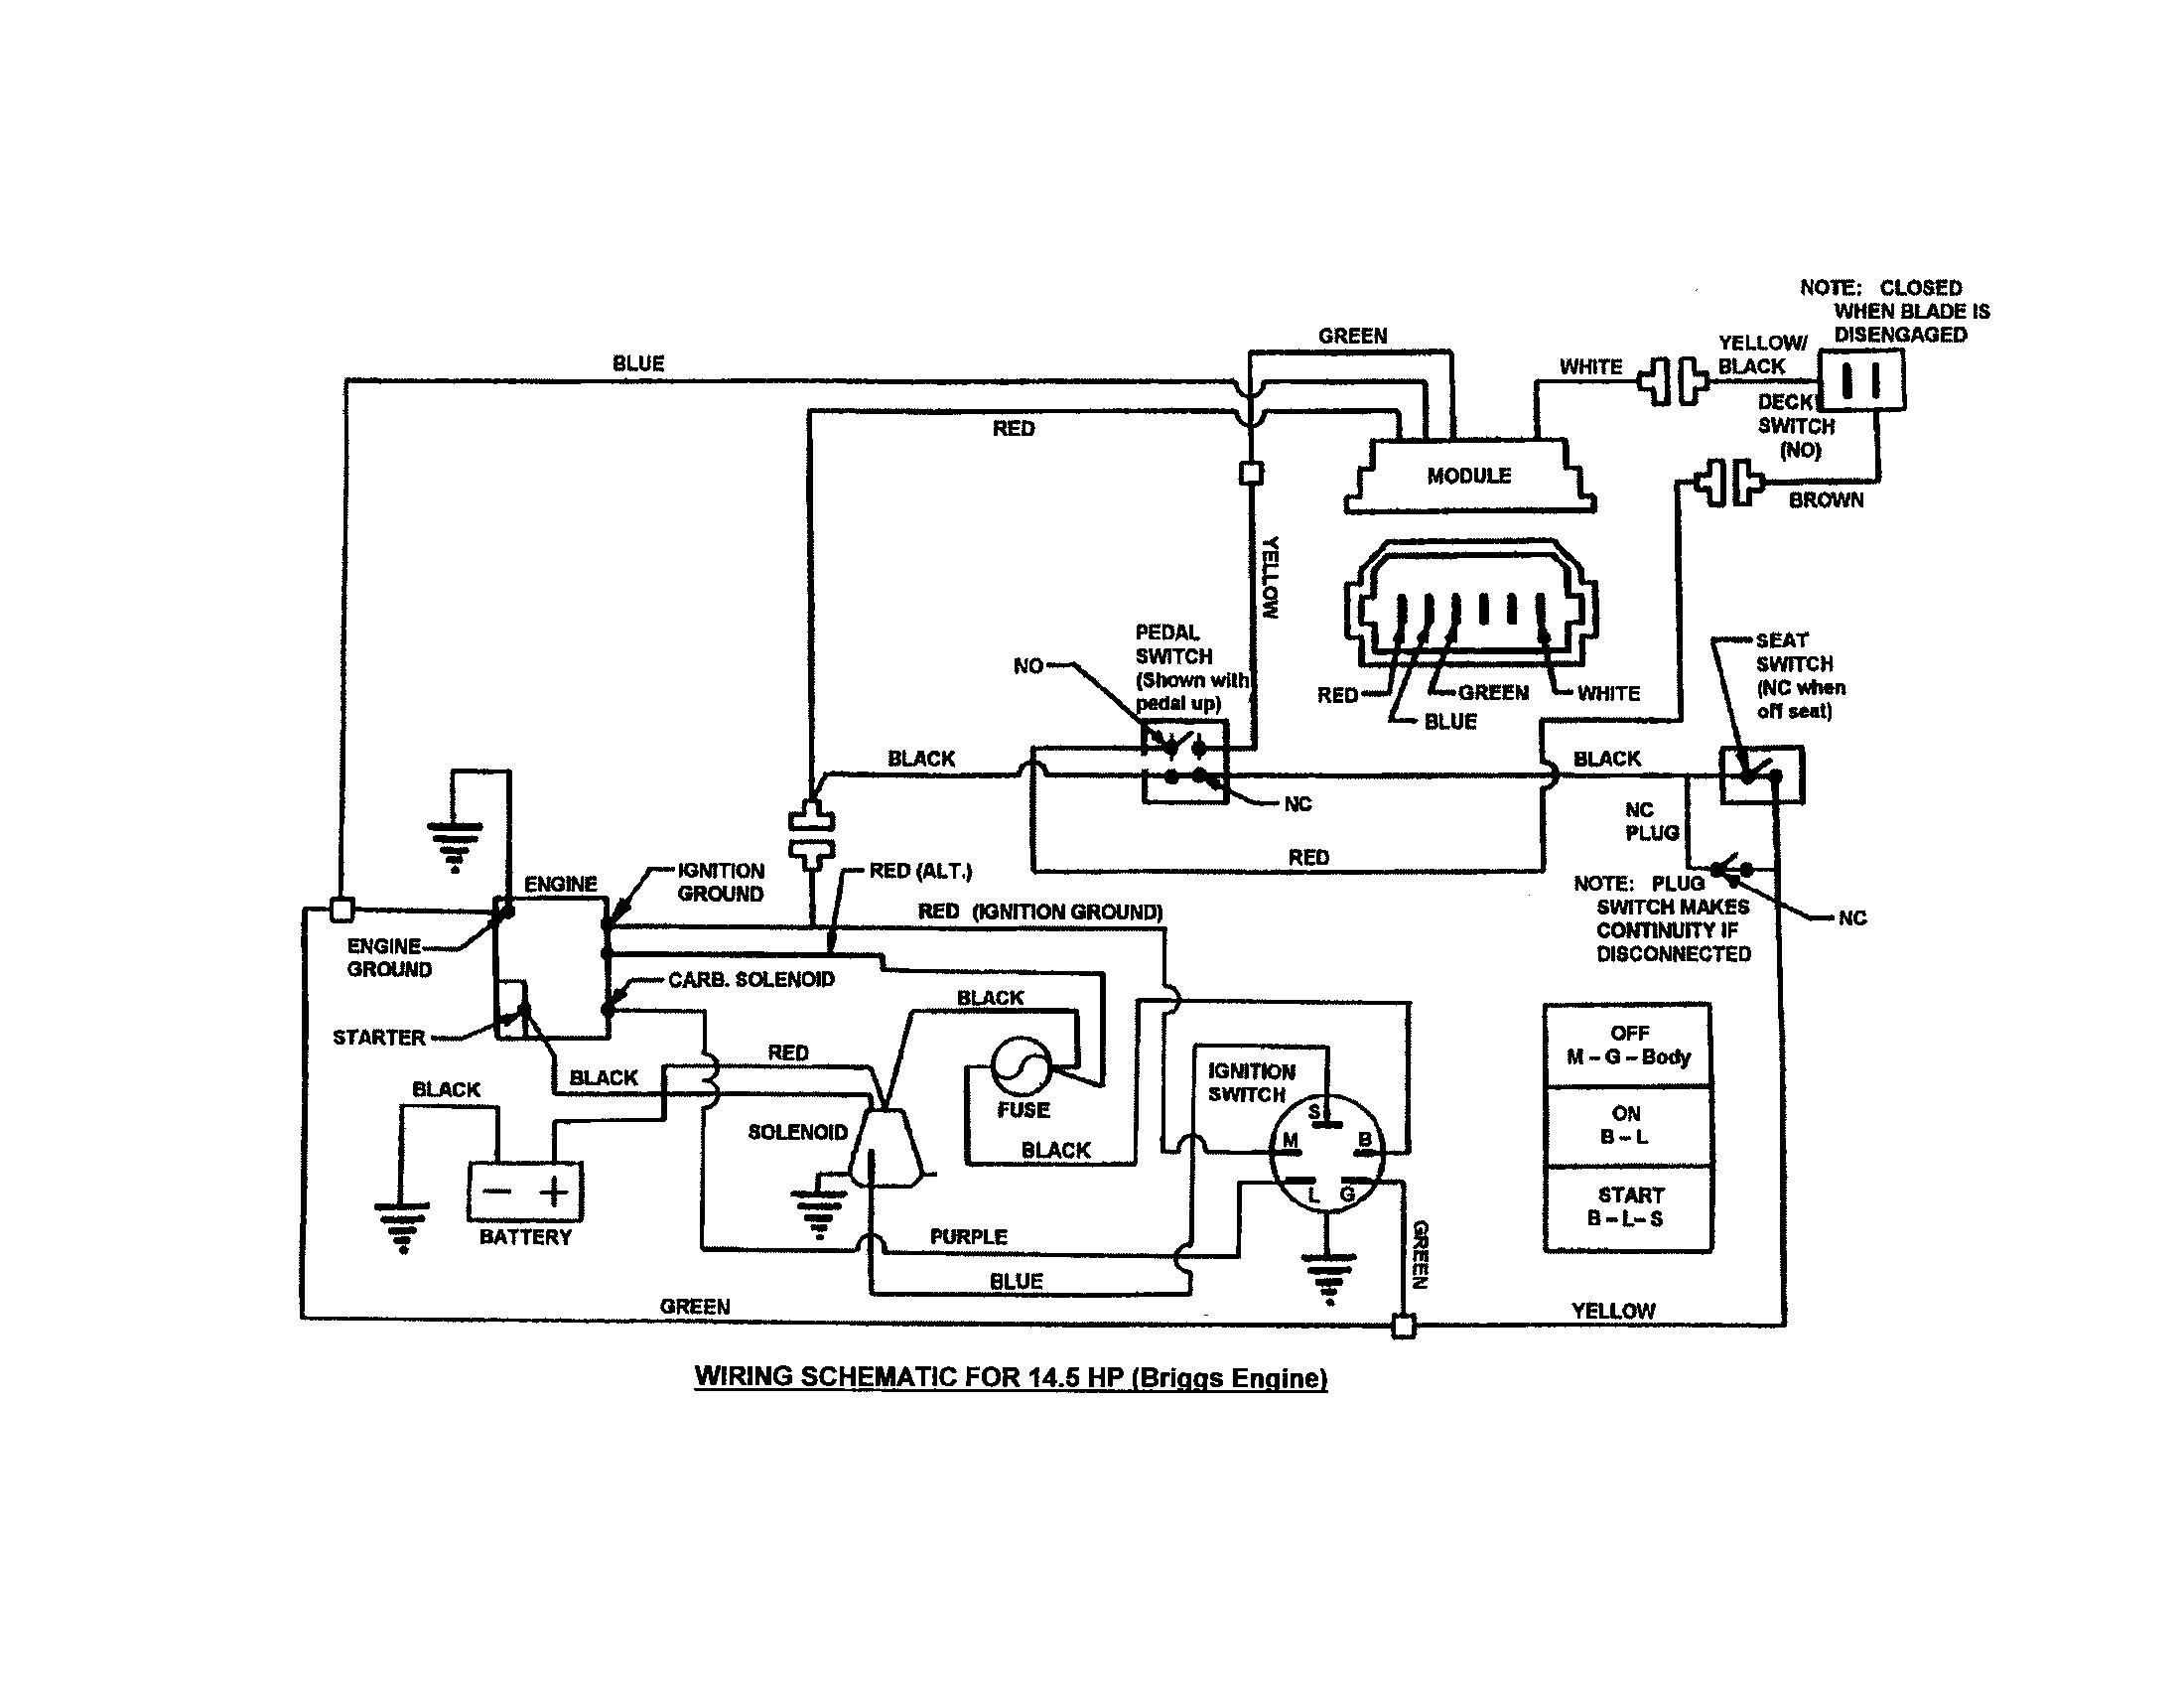 Wiring Diagram for Murray Riding Lawn Mower solenoid - Wiring Diagram for  Yardman Riding Mower Inspirationa